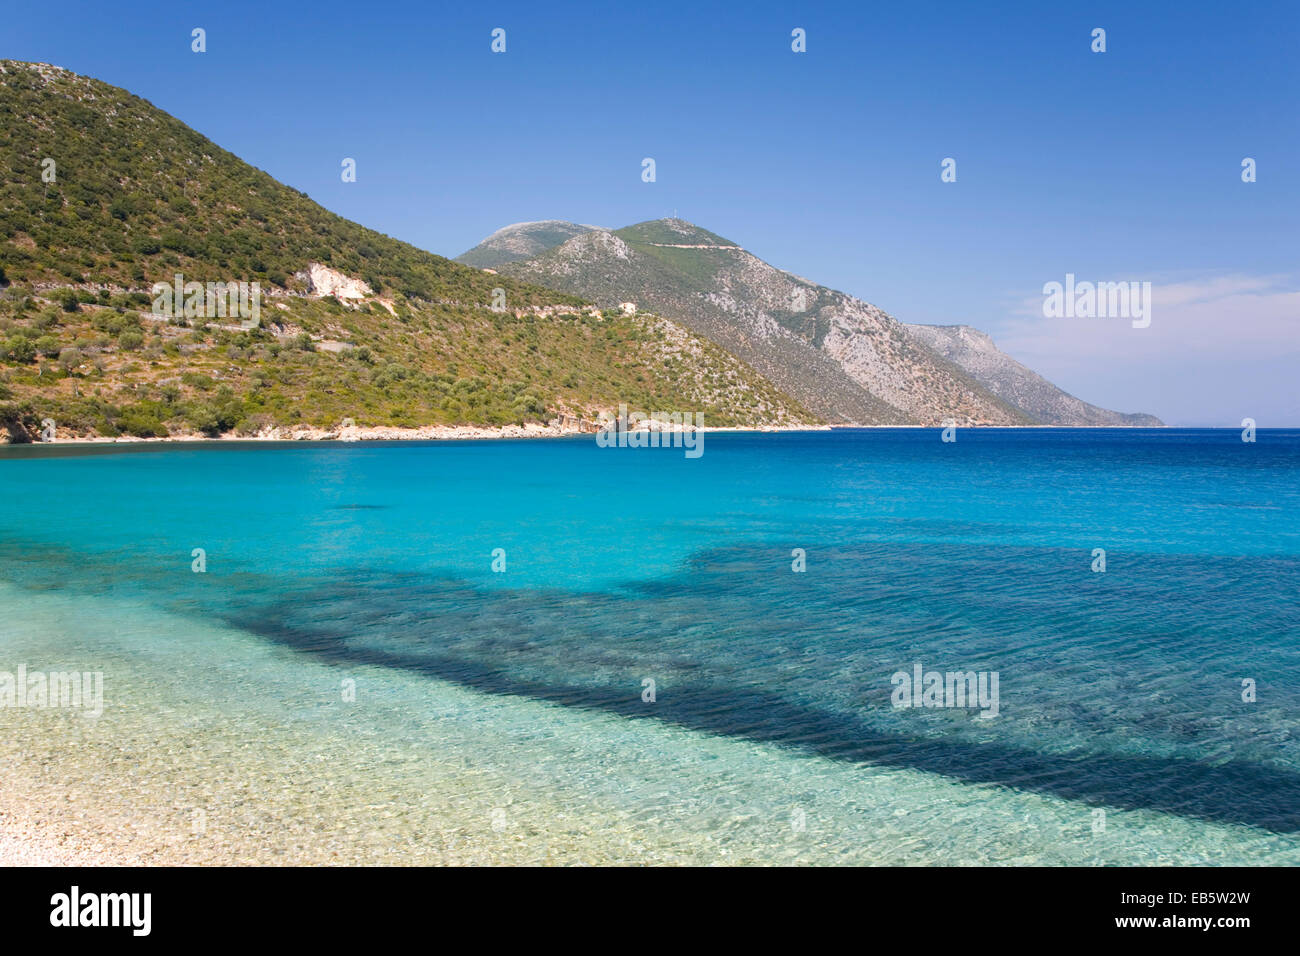 Vathy, Ithaca, Ionian Islands, Greece. View northwards across the clear turquoise waters of the Gulf of Molos. - Stock Image